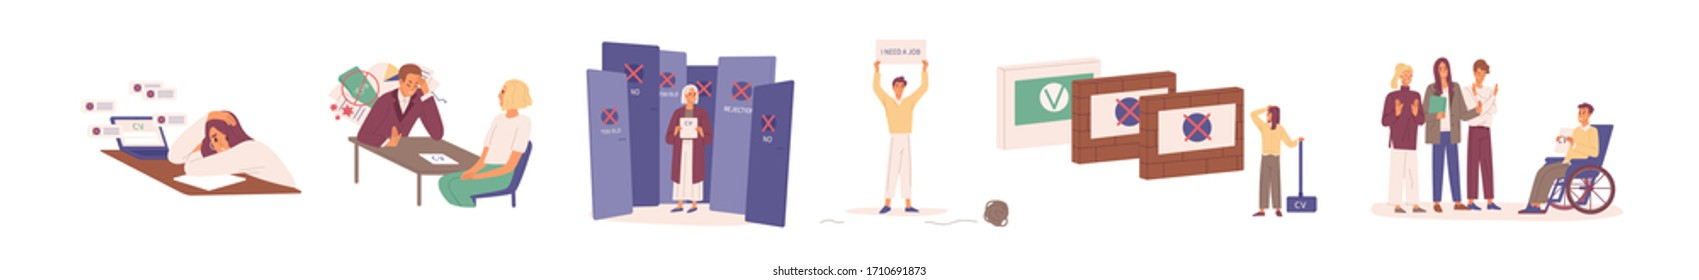 Hard to find a job during crisis. Young, disabled and elderly people have problems in job seeking. Resume is rejected by employer. Unemployed characters set. Vector illustration in flat cartoon style